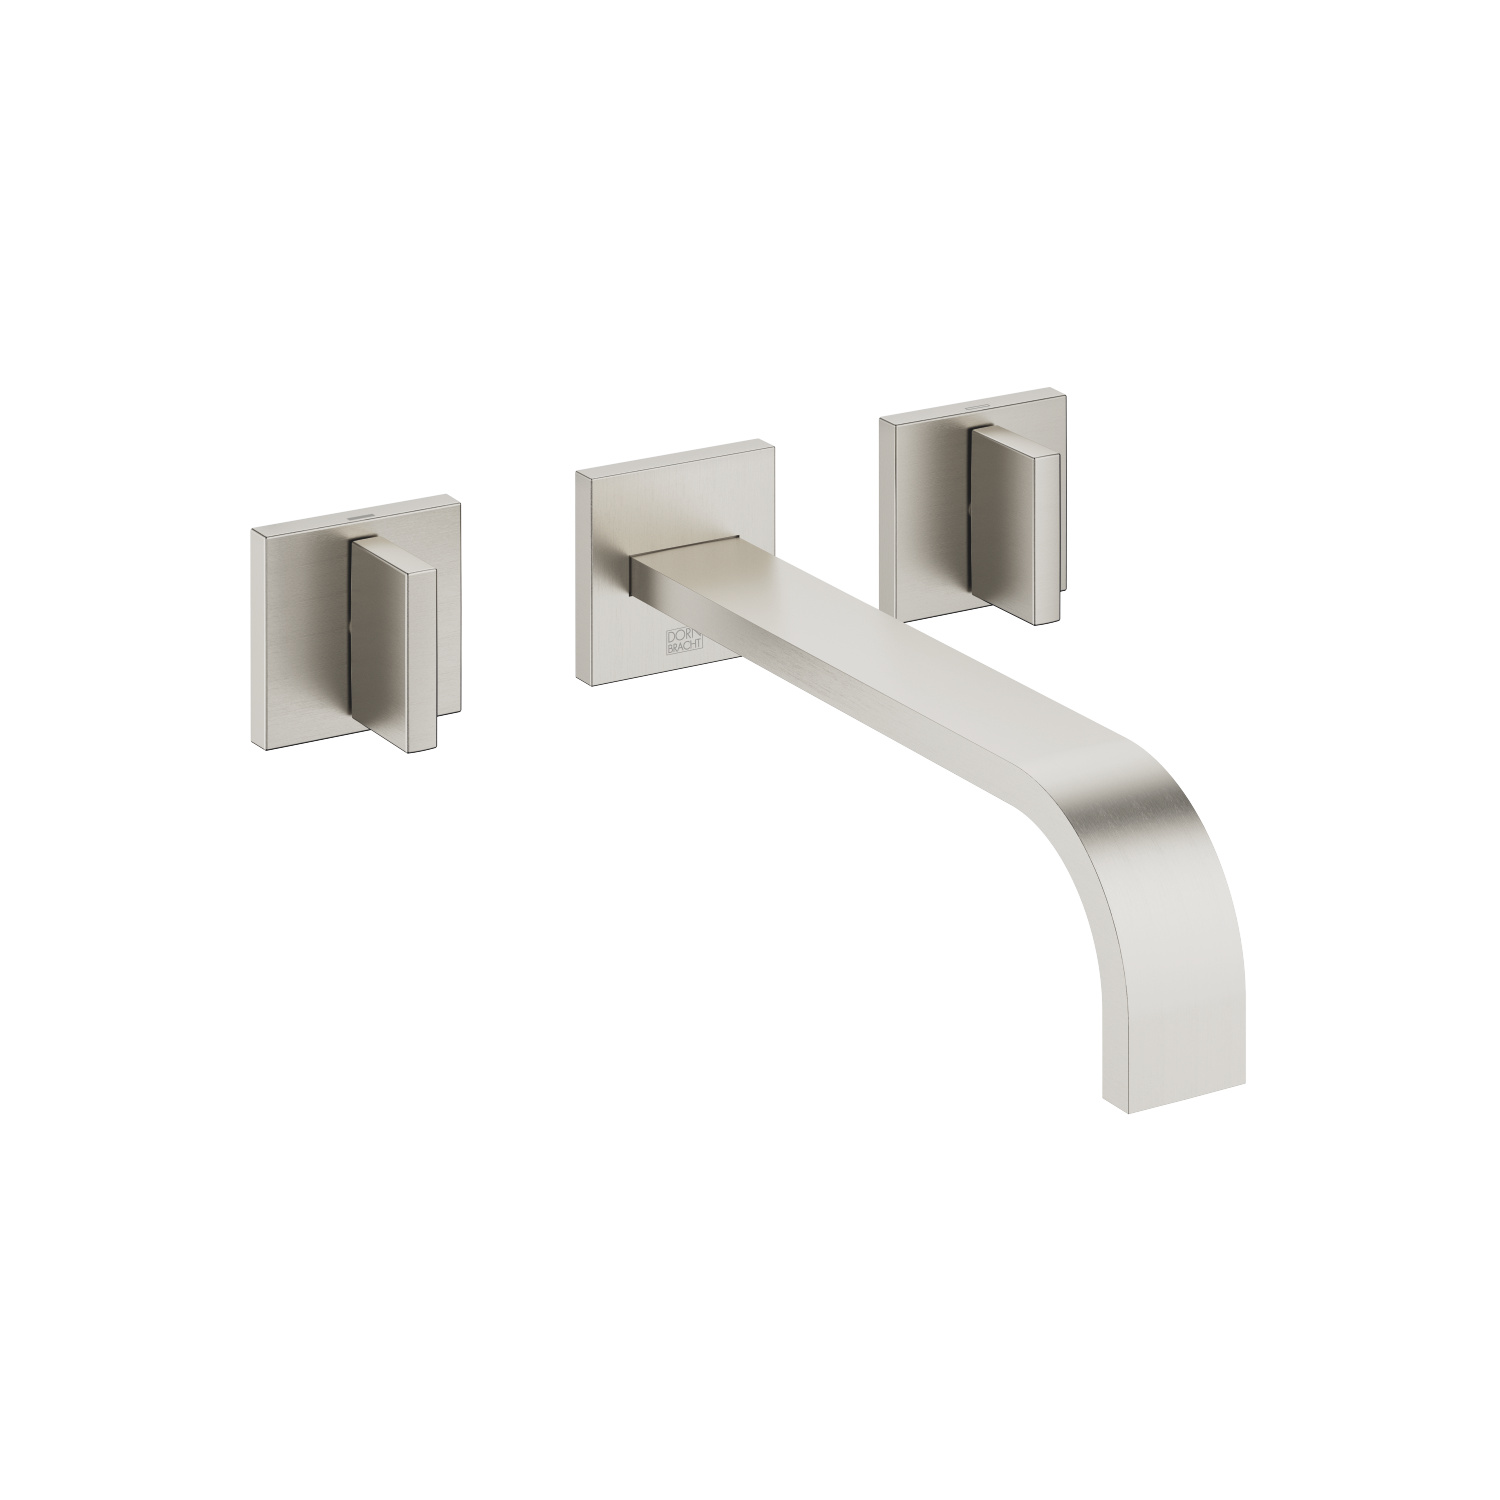 Wall-mounted three-hole lavatory mixer without drain - platinum matte - 36 717 782-06 0010